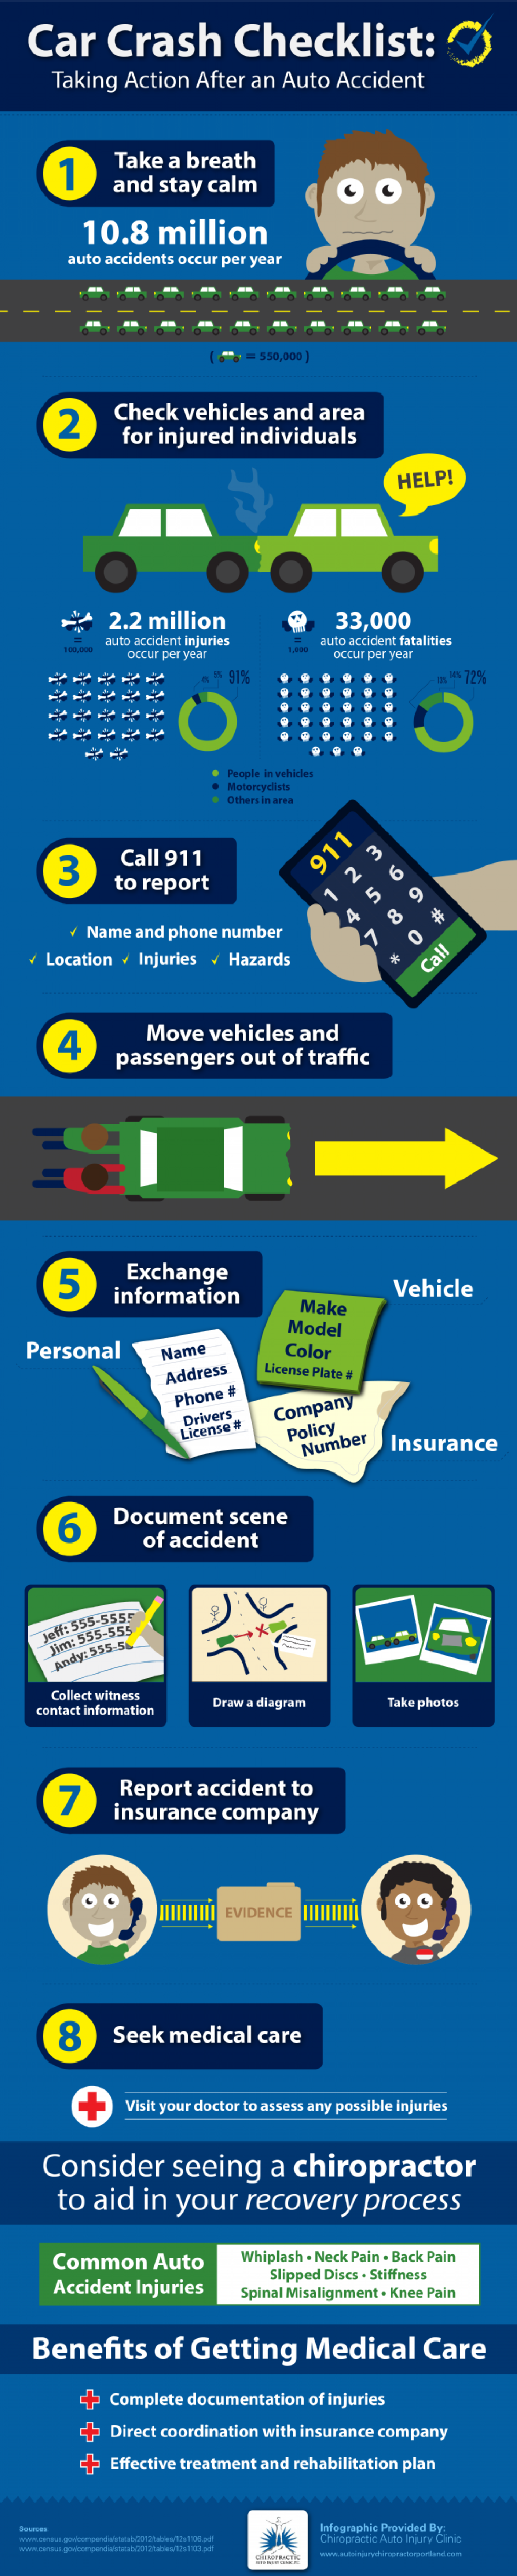 Car Crash Checklist: Taking Action After an Auto Accident  Infographic